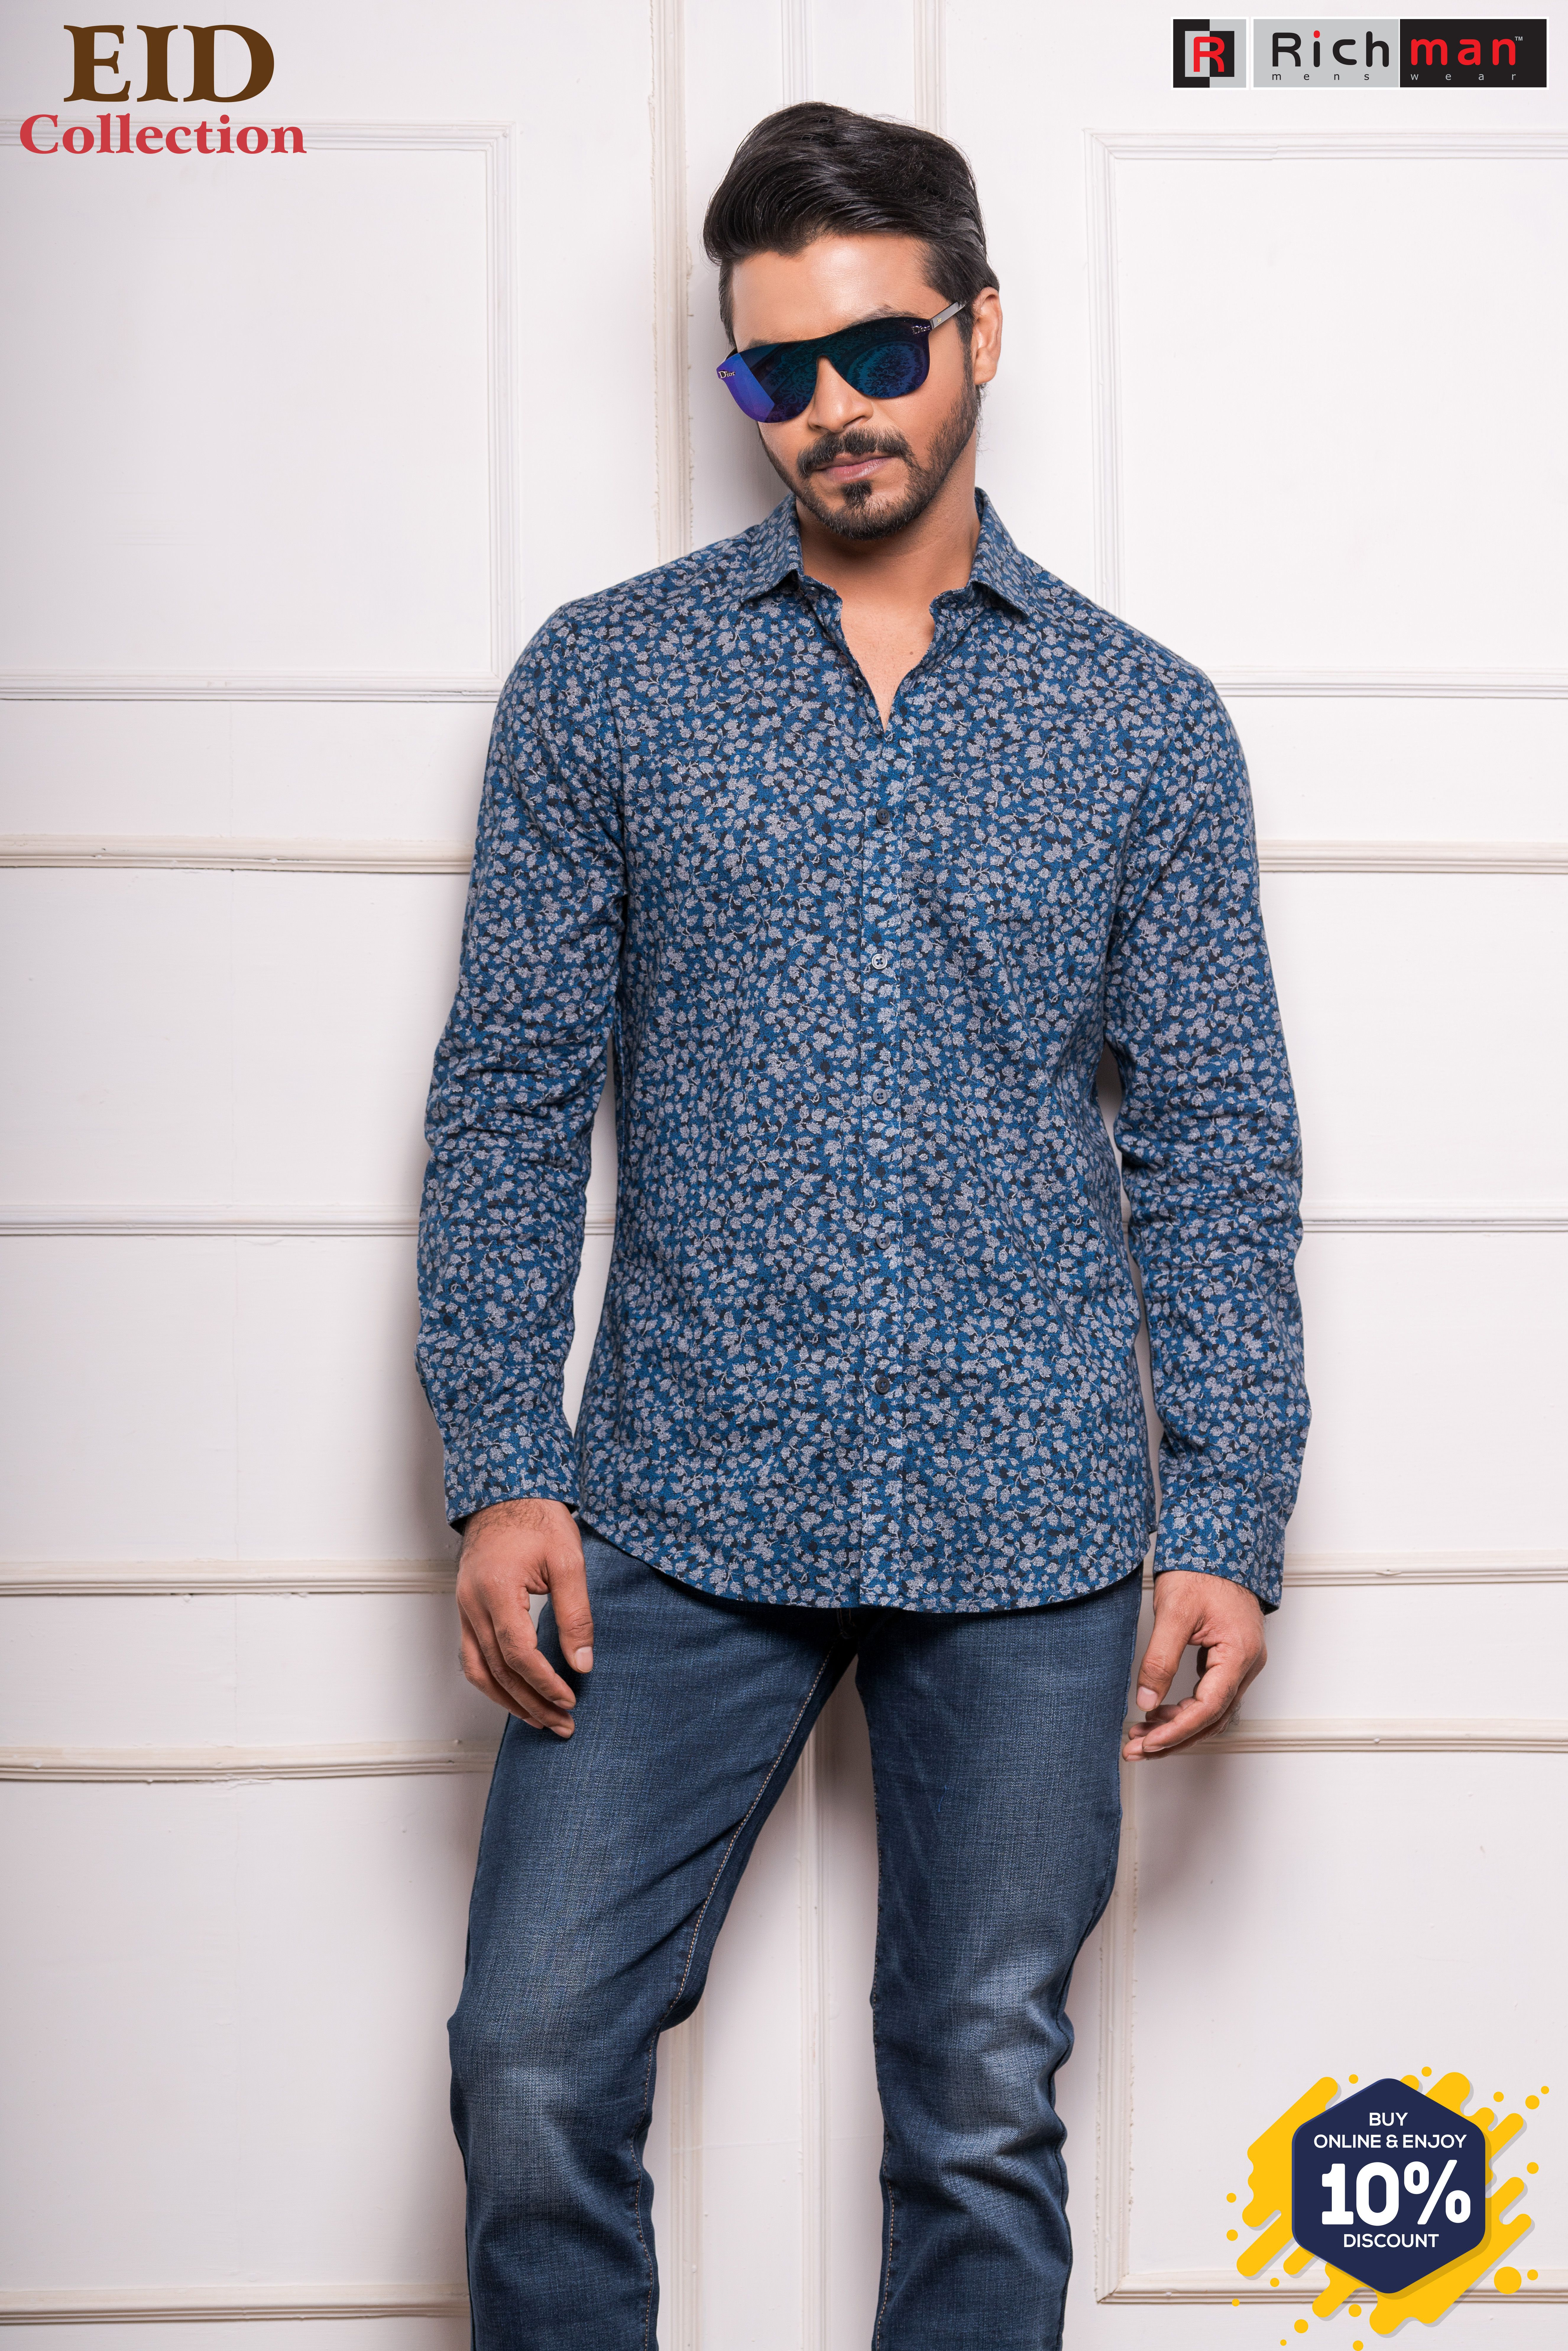 c6dcc04b622a Exclusive Mens Collection for Eid-Ul-Adha by iNFINITY Mega Mall ...